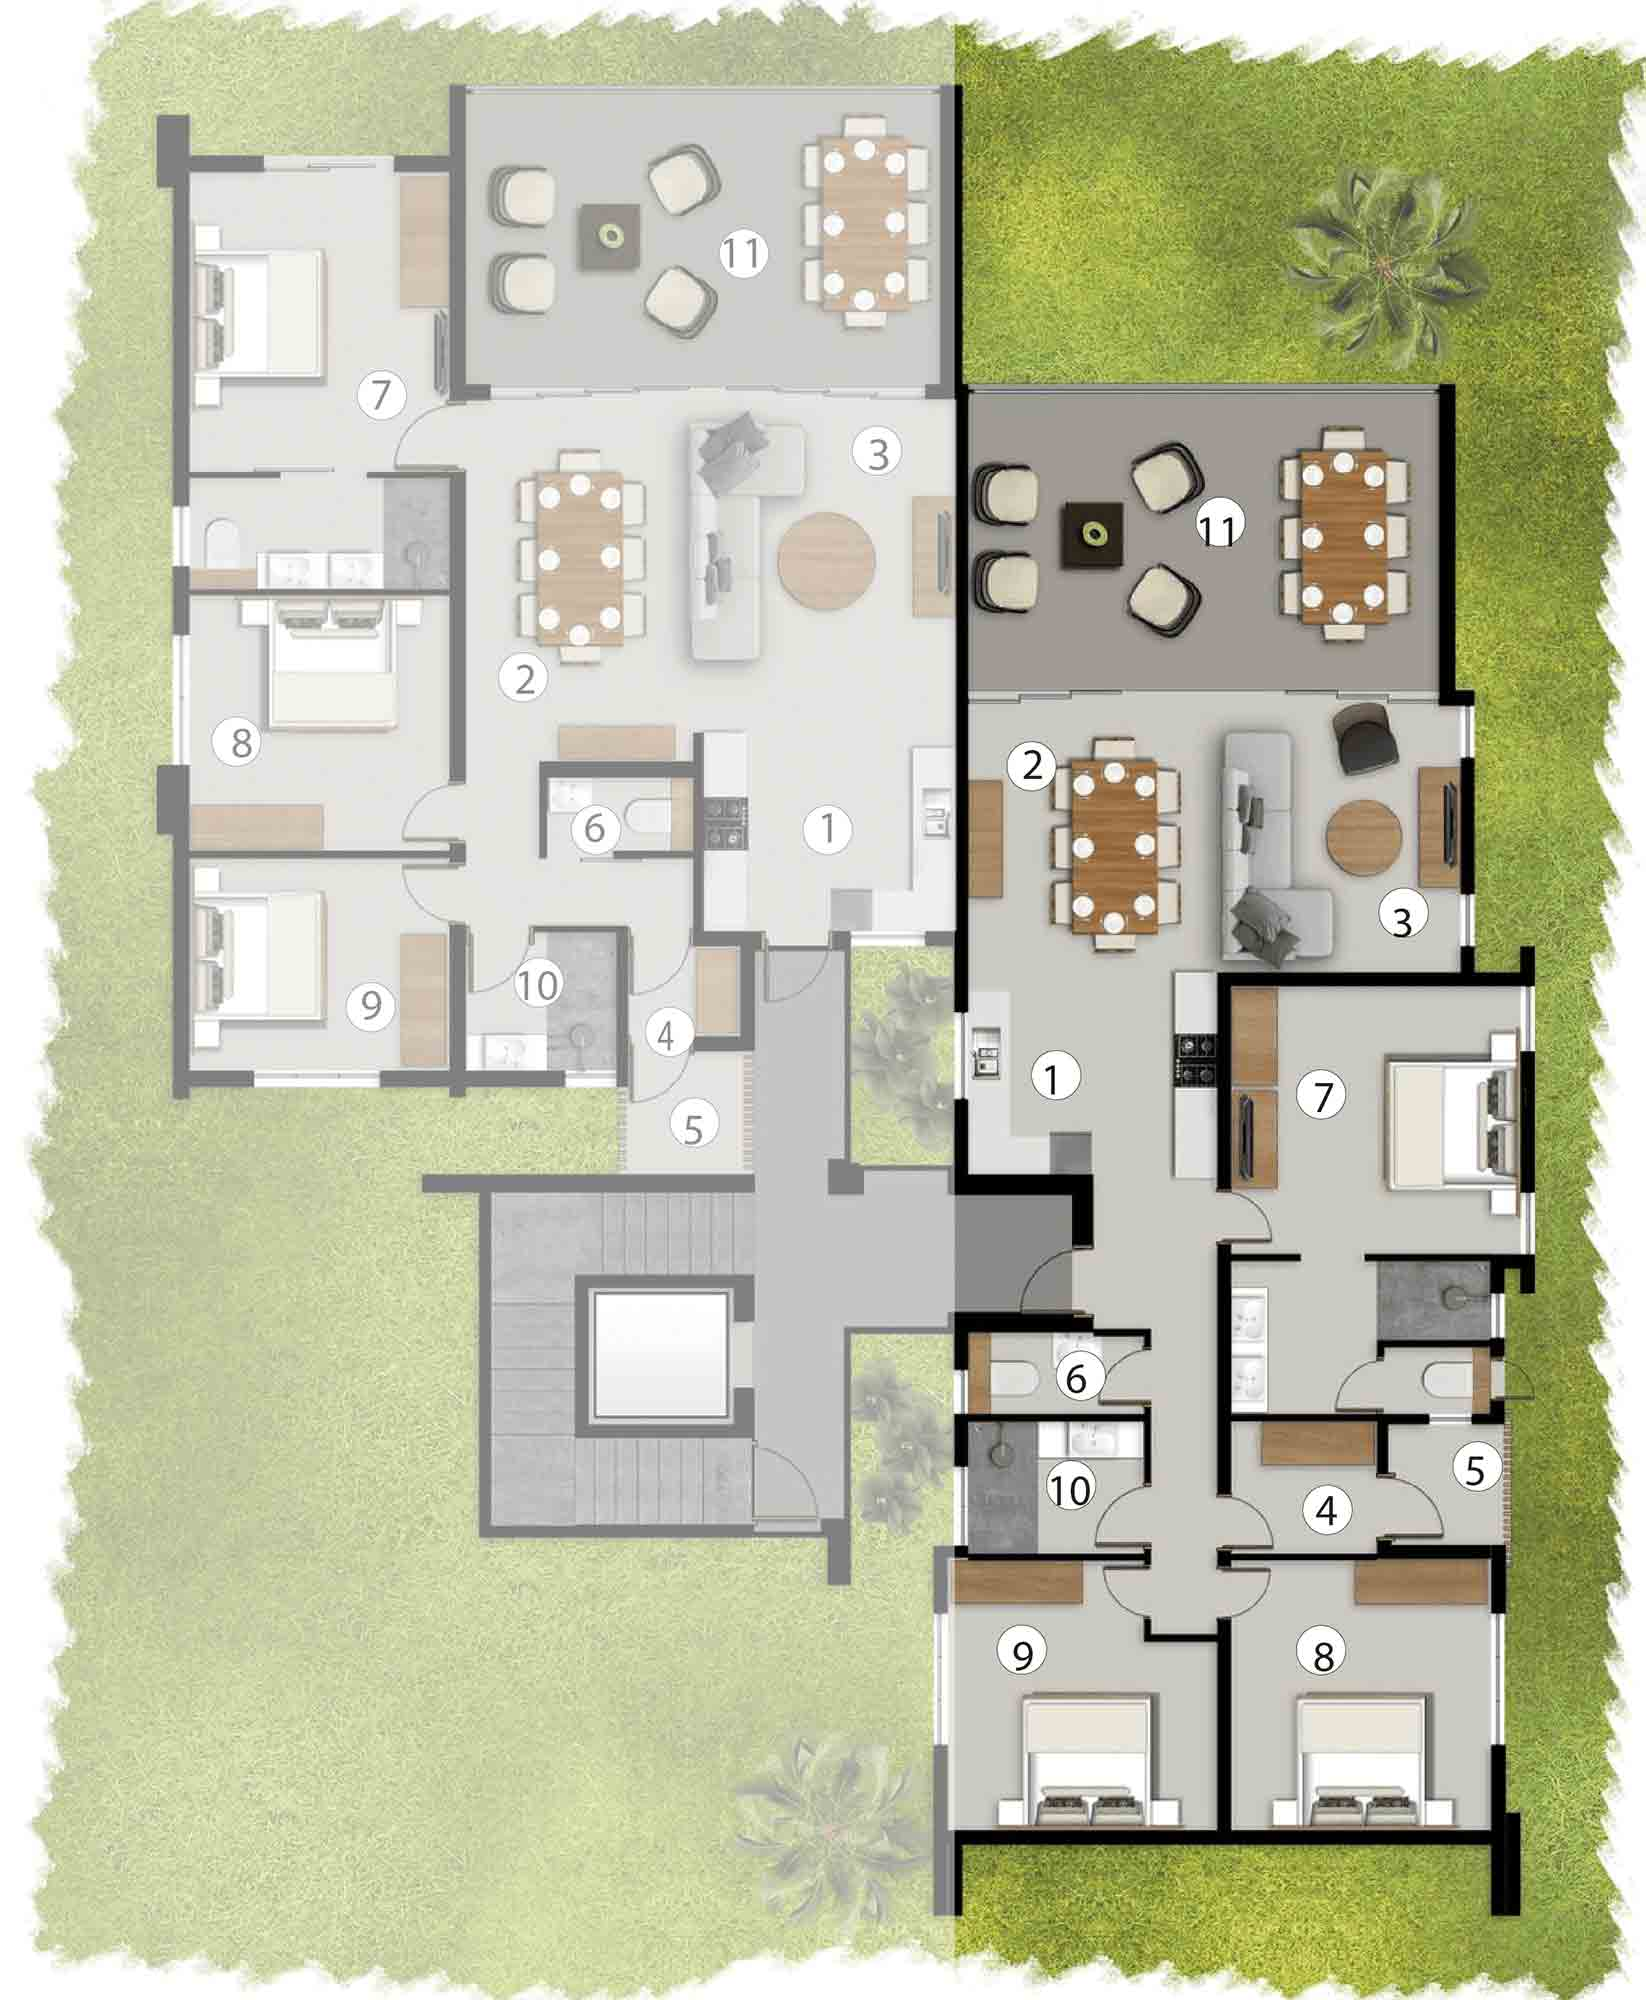 Apartments First Floor AF2/BF1/CF2